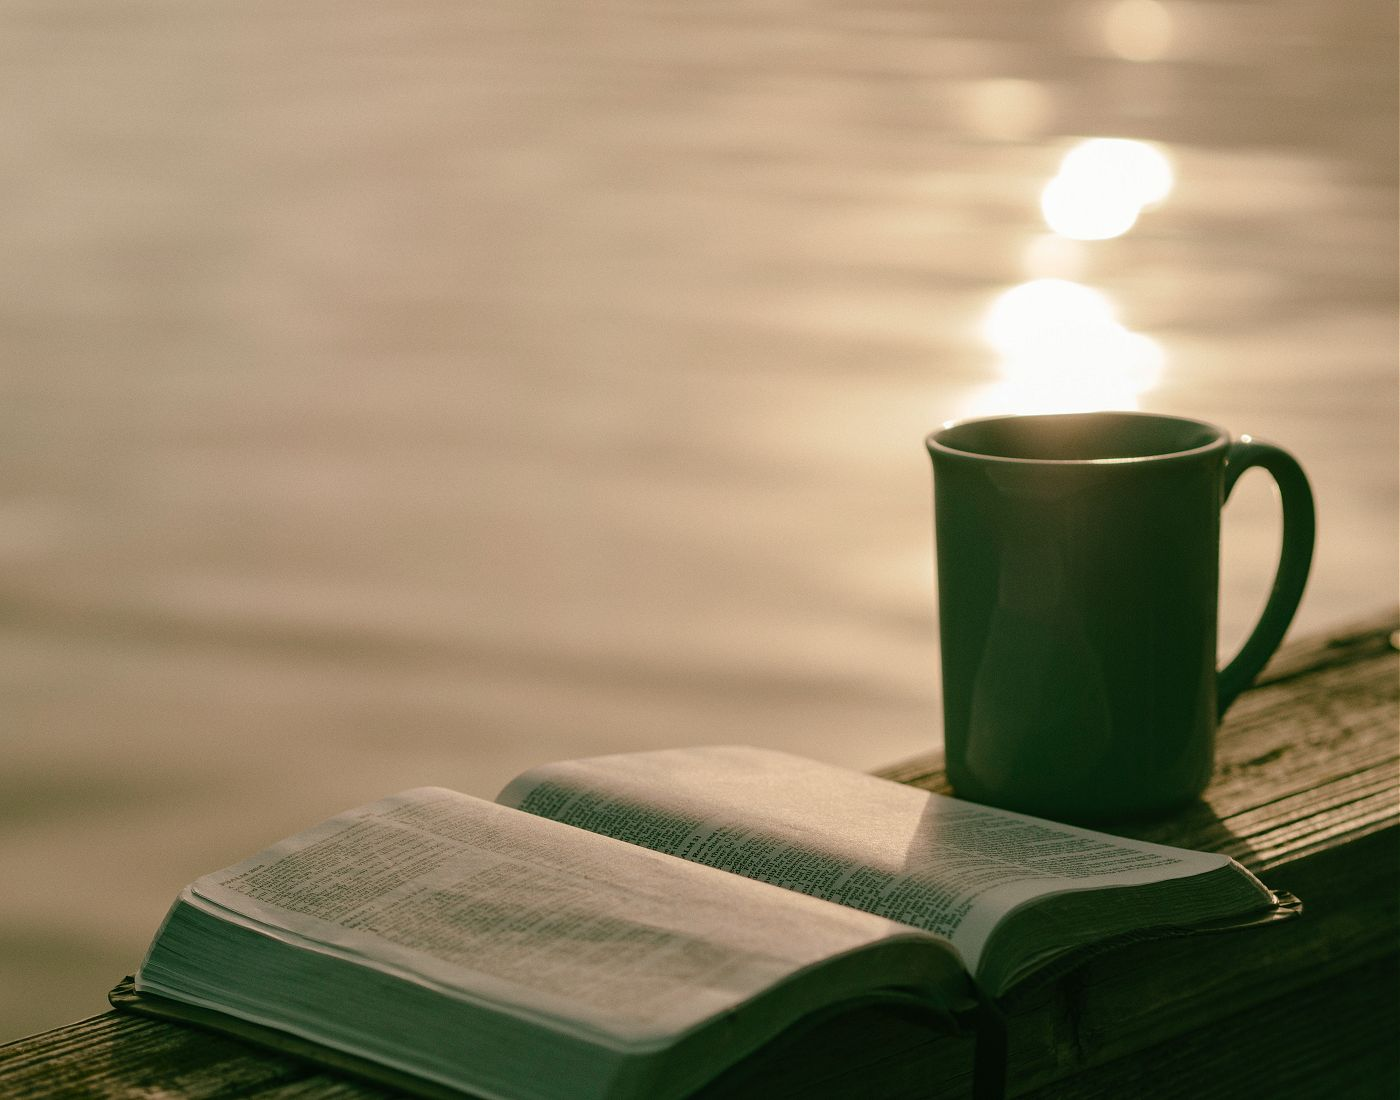 Tea and Bible